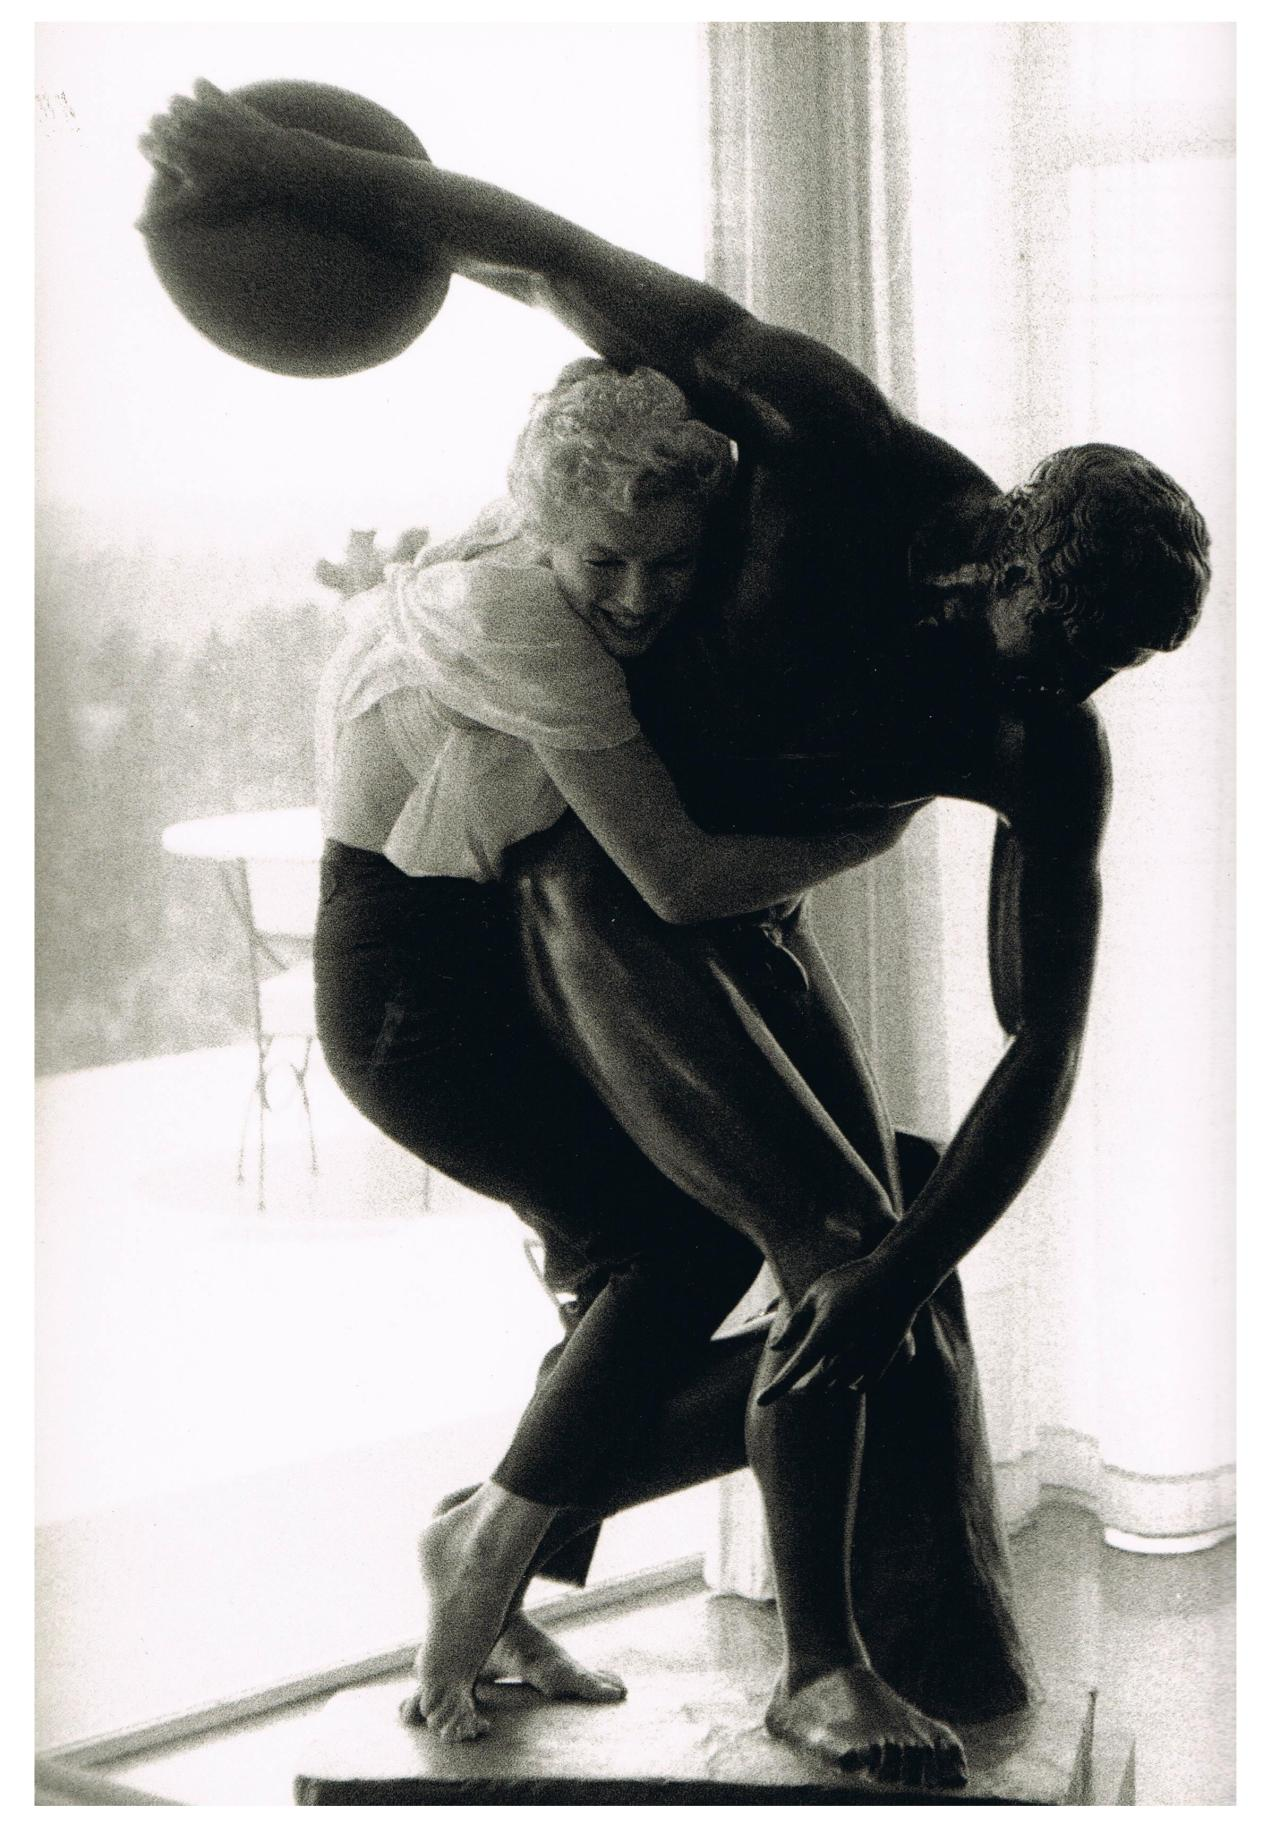 Marilyn Monroe posing with hairdresser Sidney Guilaroff's statue of the discus thrower. Photograph by Milton Greene.